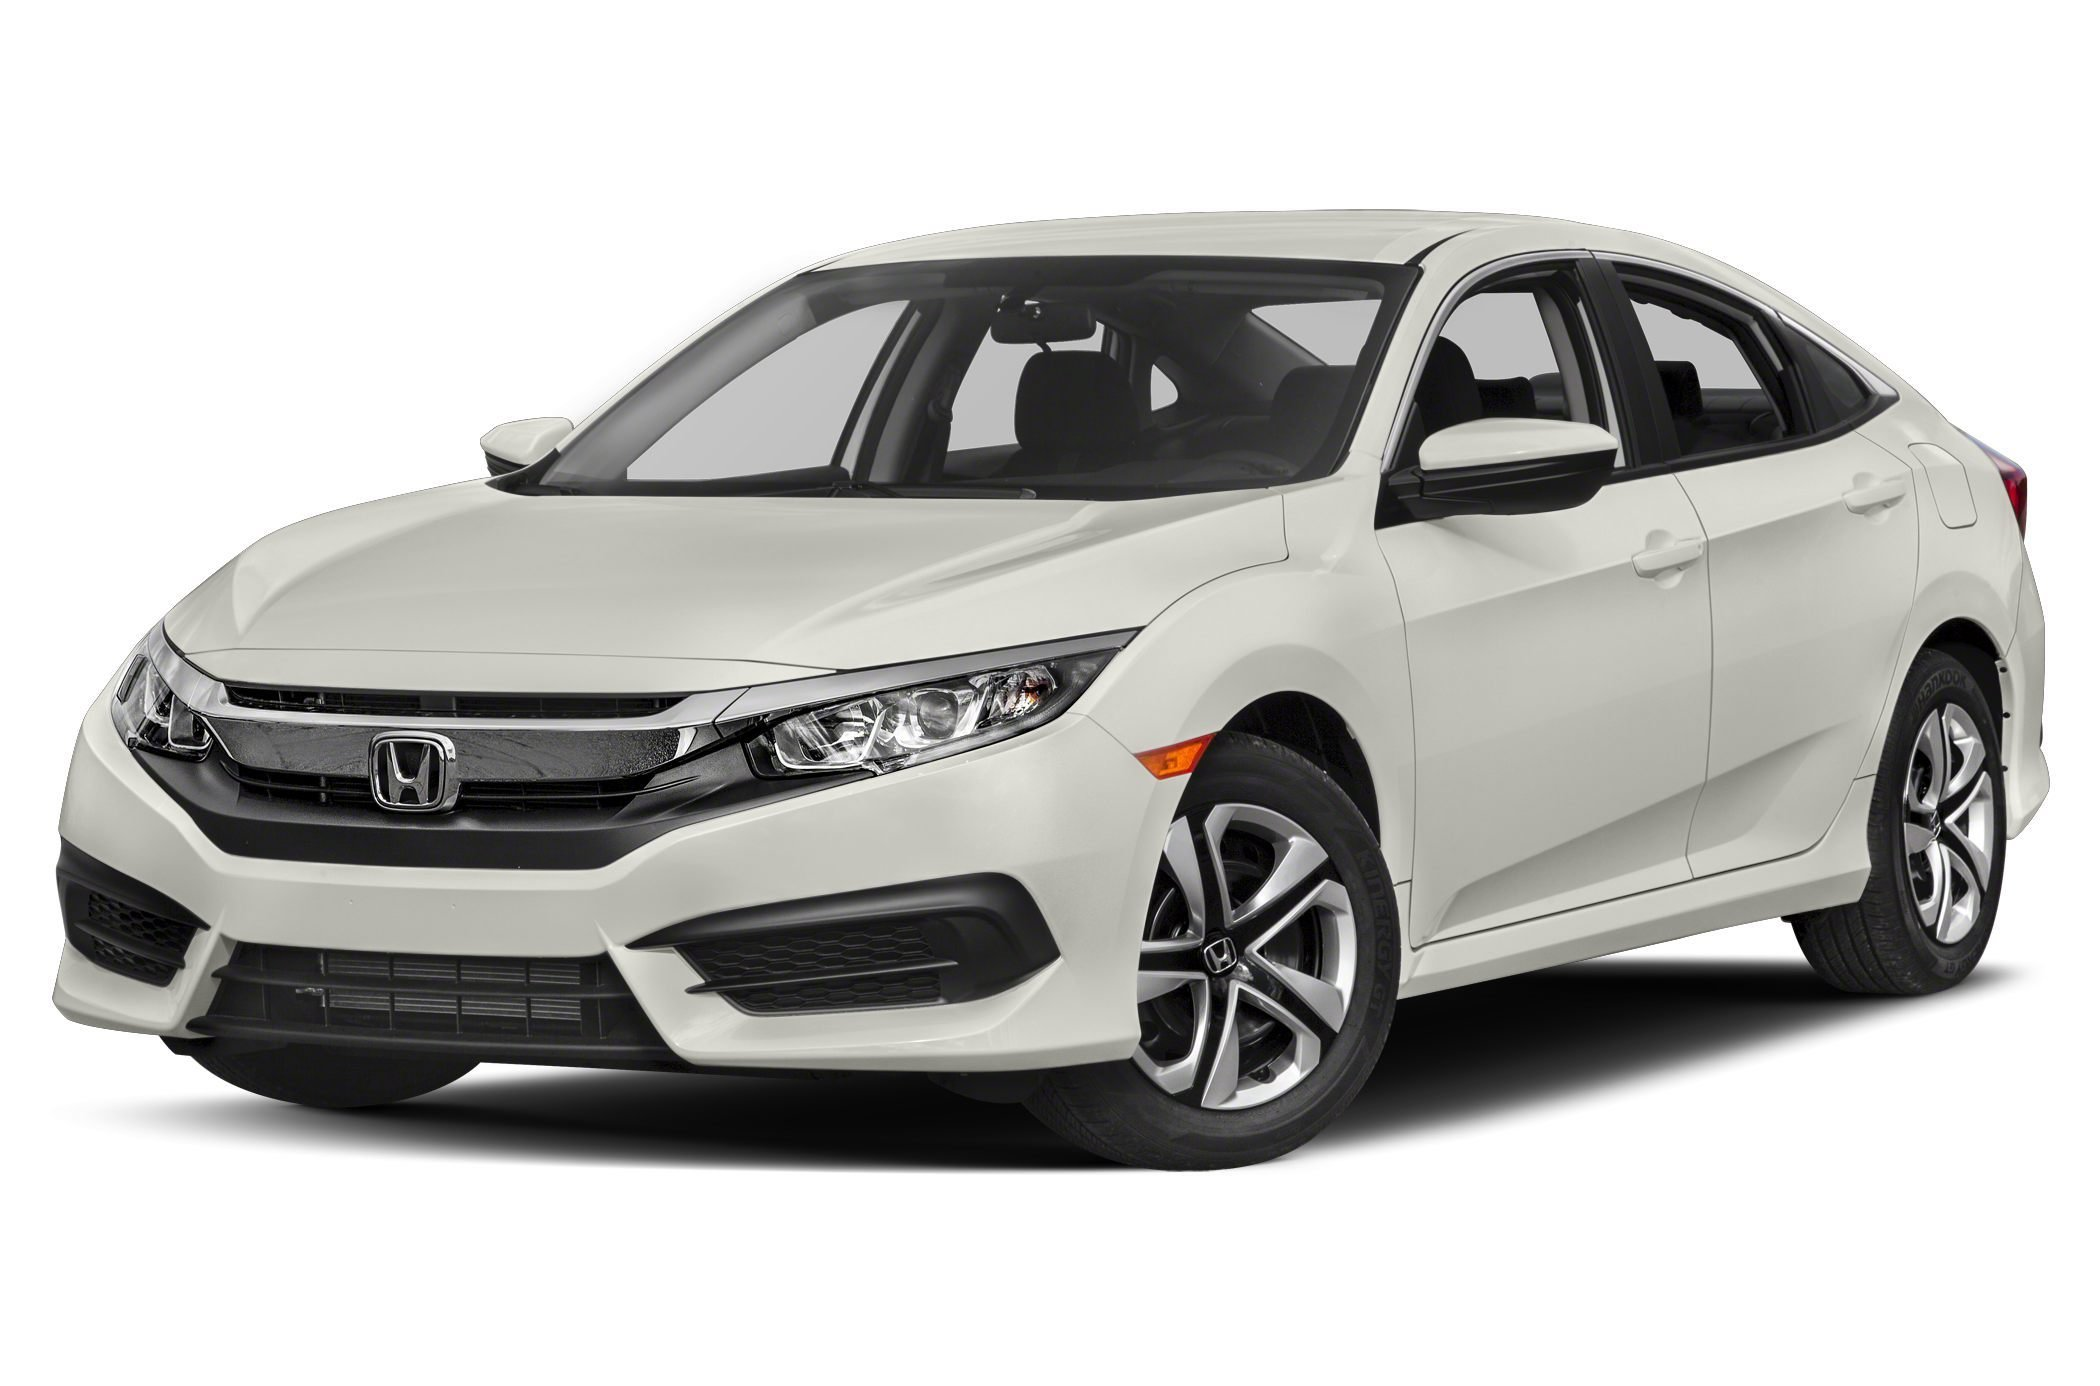 Latest New 2017 Honda Civic Price Photos Reviews Safety Free Download